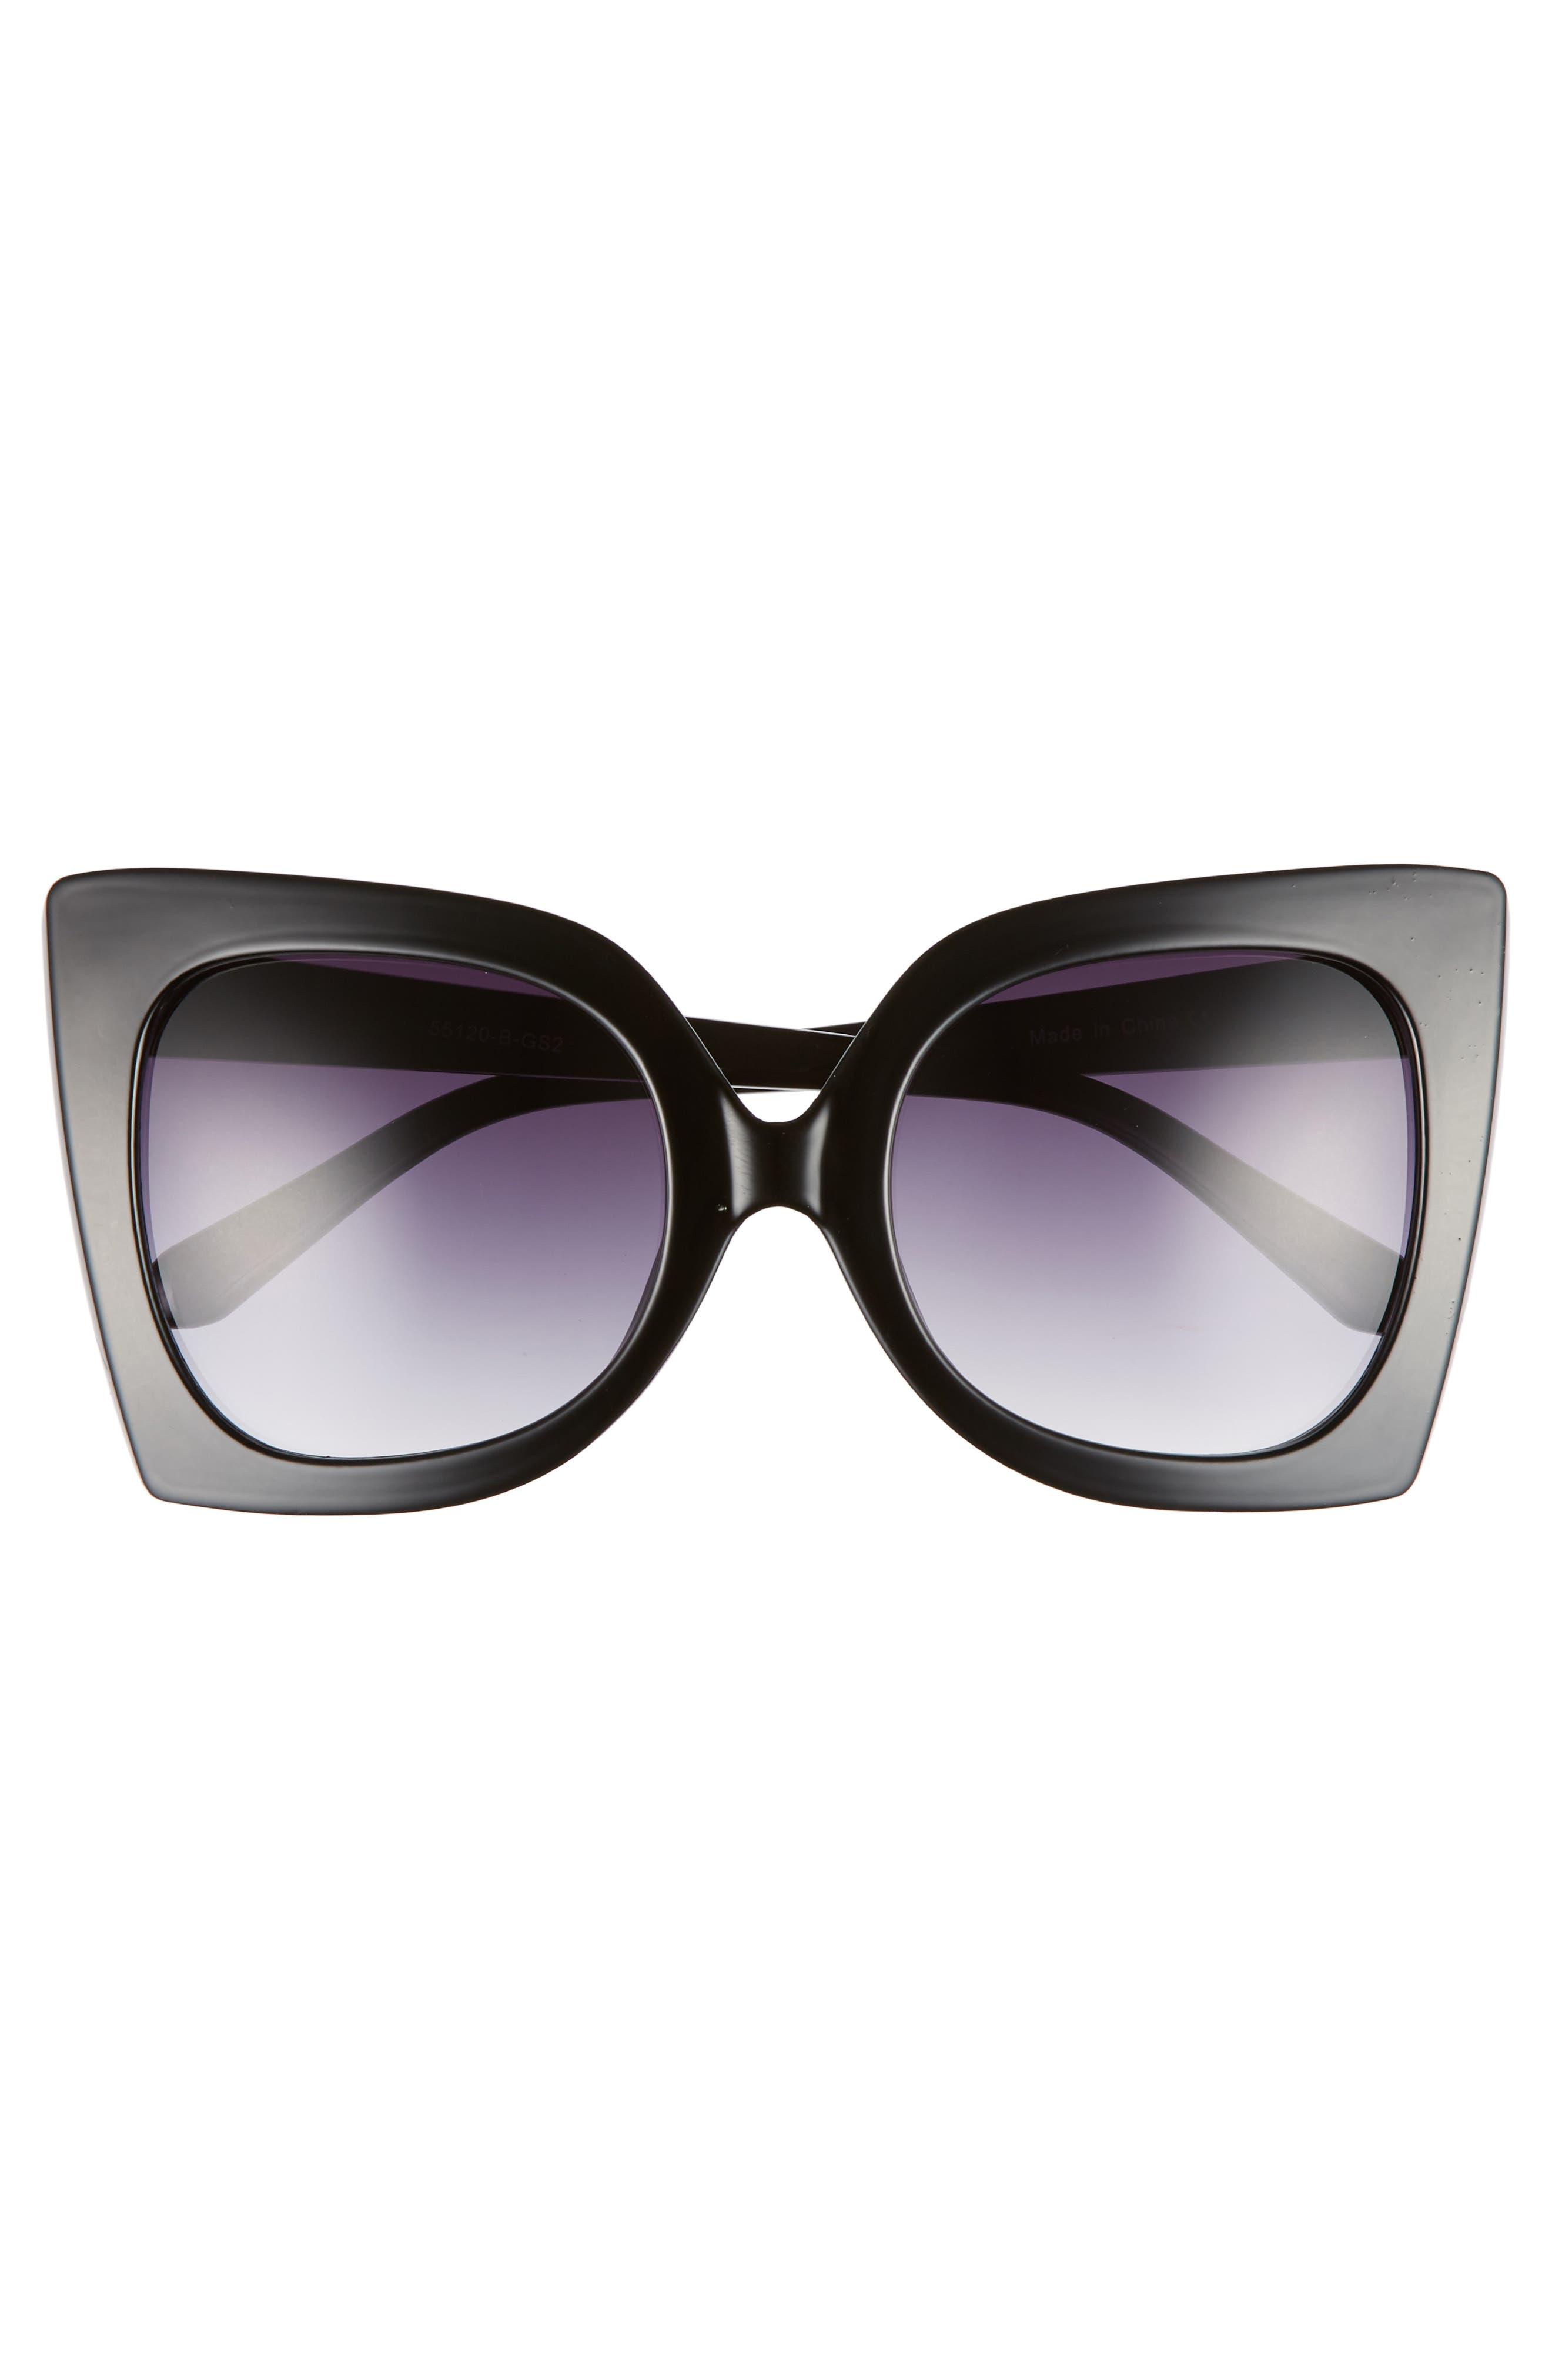 56mm Exaggerated Square Sunglasses,                             Alternate thumbnail 3, color,                             001